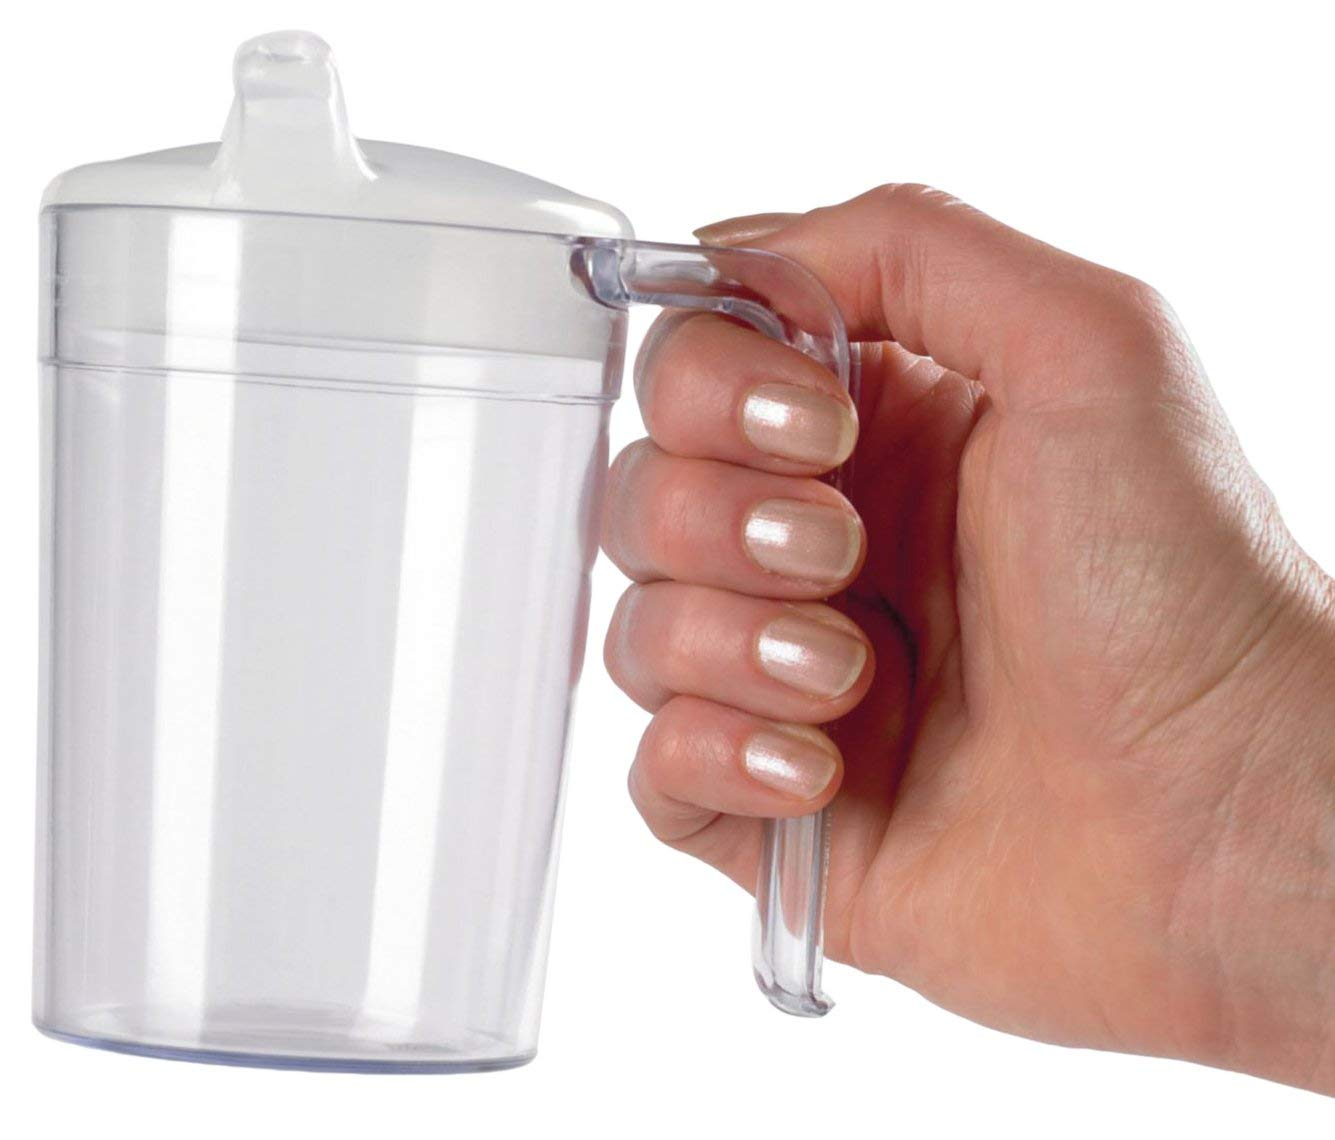 Homecraft Clear Polycarb Mug, Shatterproof Material, Choice of 2 Lids, Simple Drinking Cup and Mug for Limited Grip and Range of Motion, Ideal for Medical Patients, Children, Elderly, Handicapped